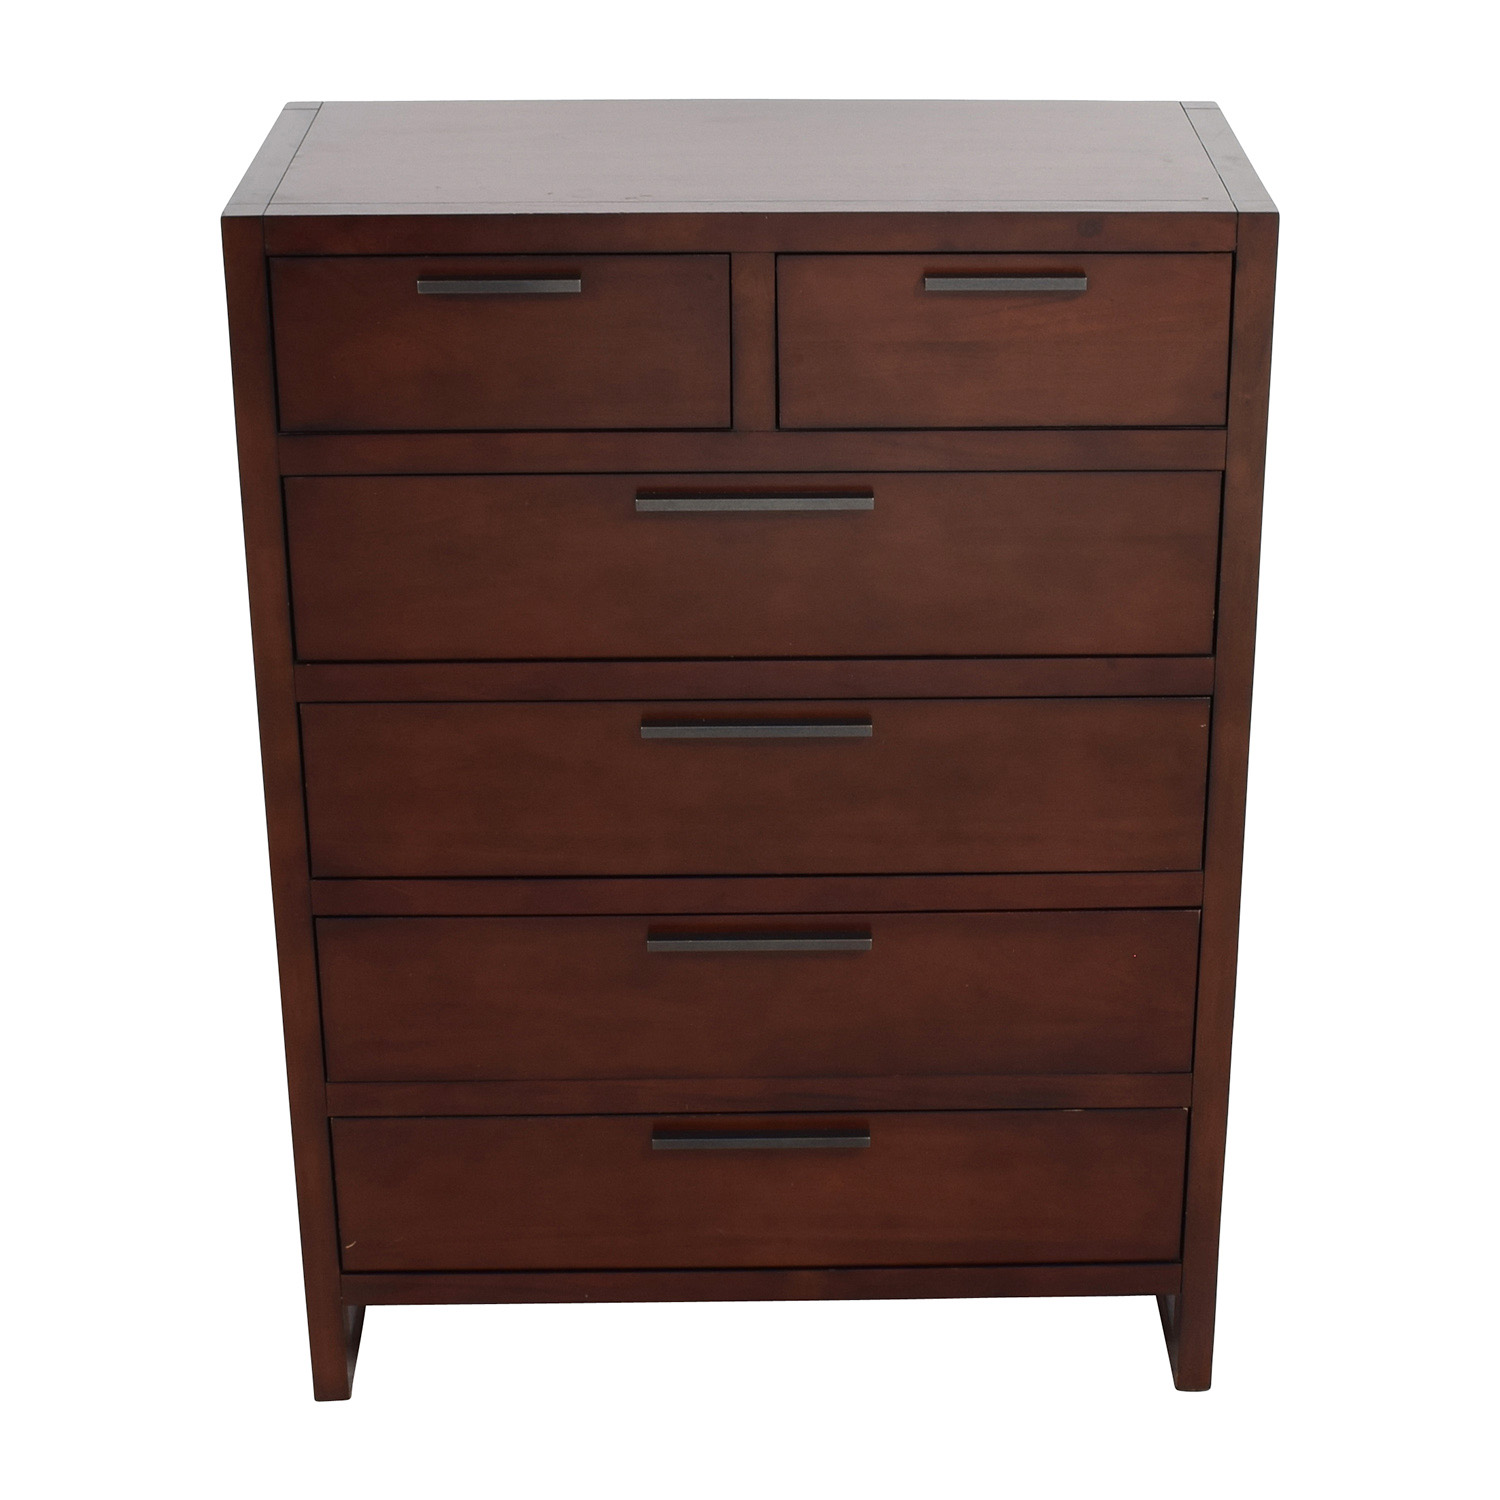 Macys Macys Battery Park Six- Drawer Chest nyc